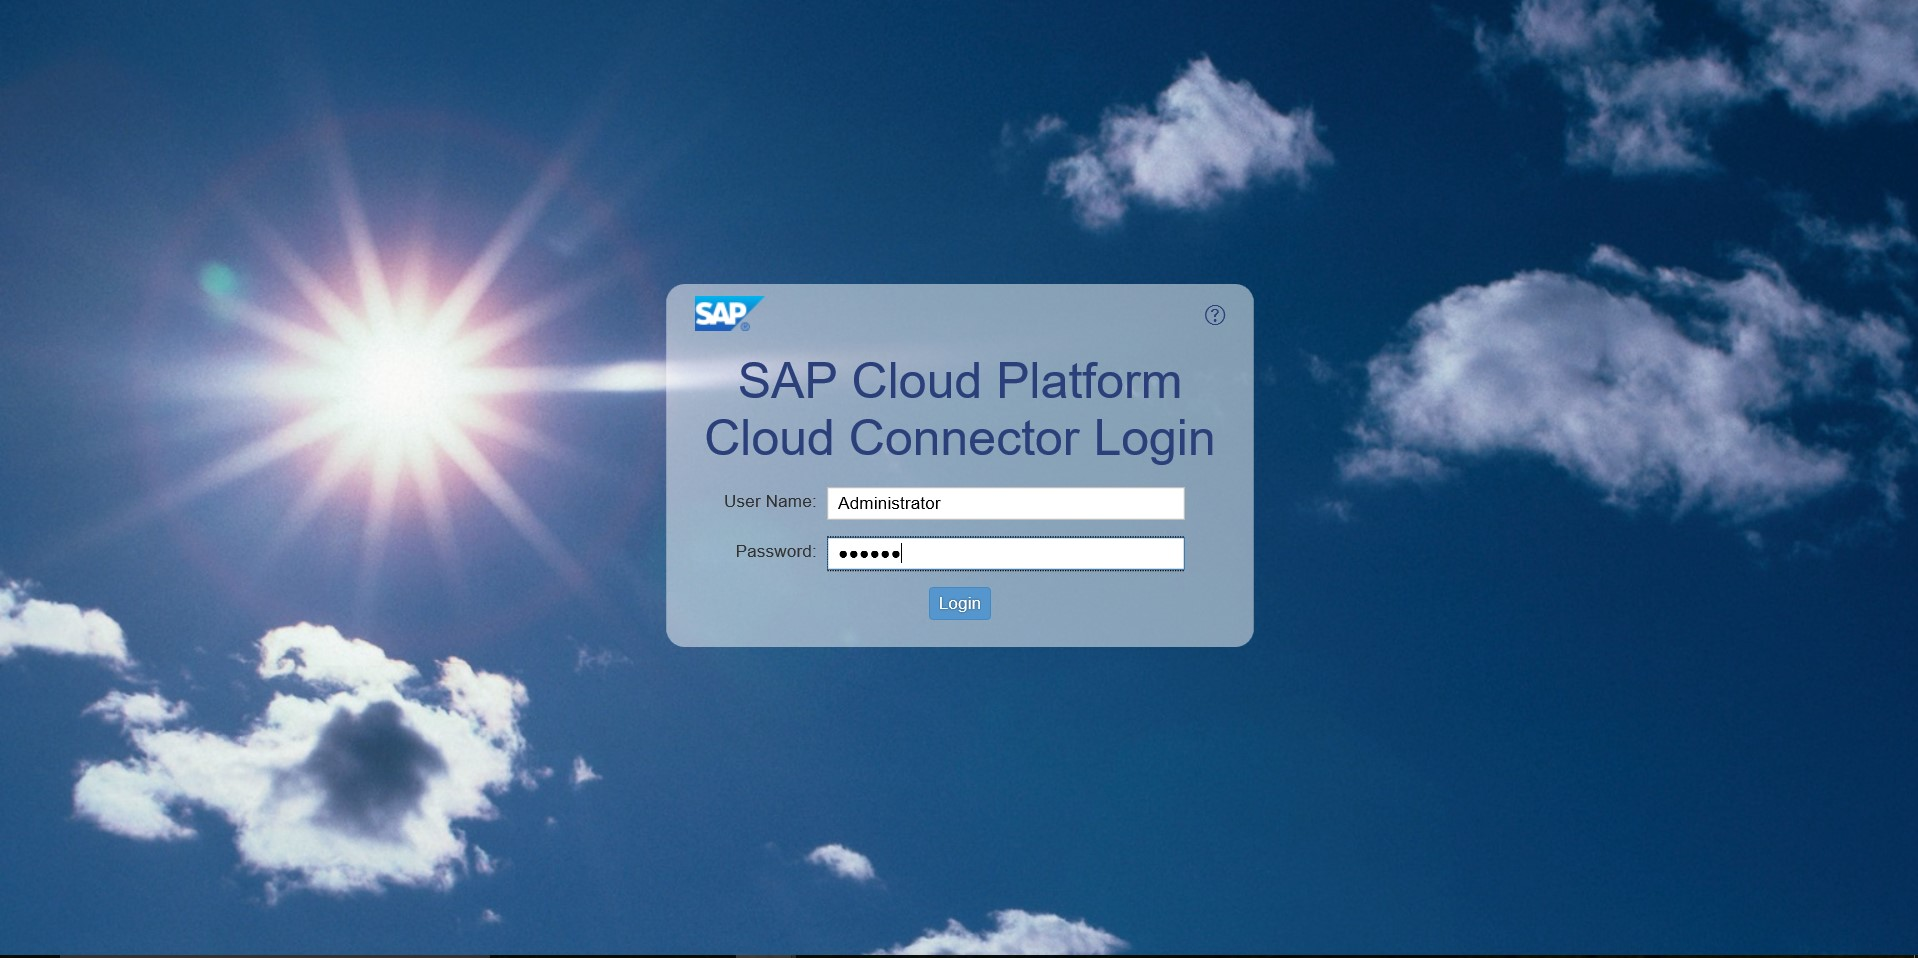 Cloud Connector login screen